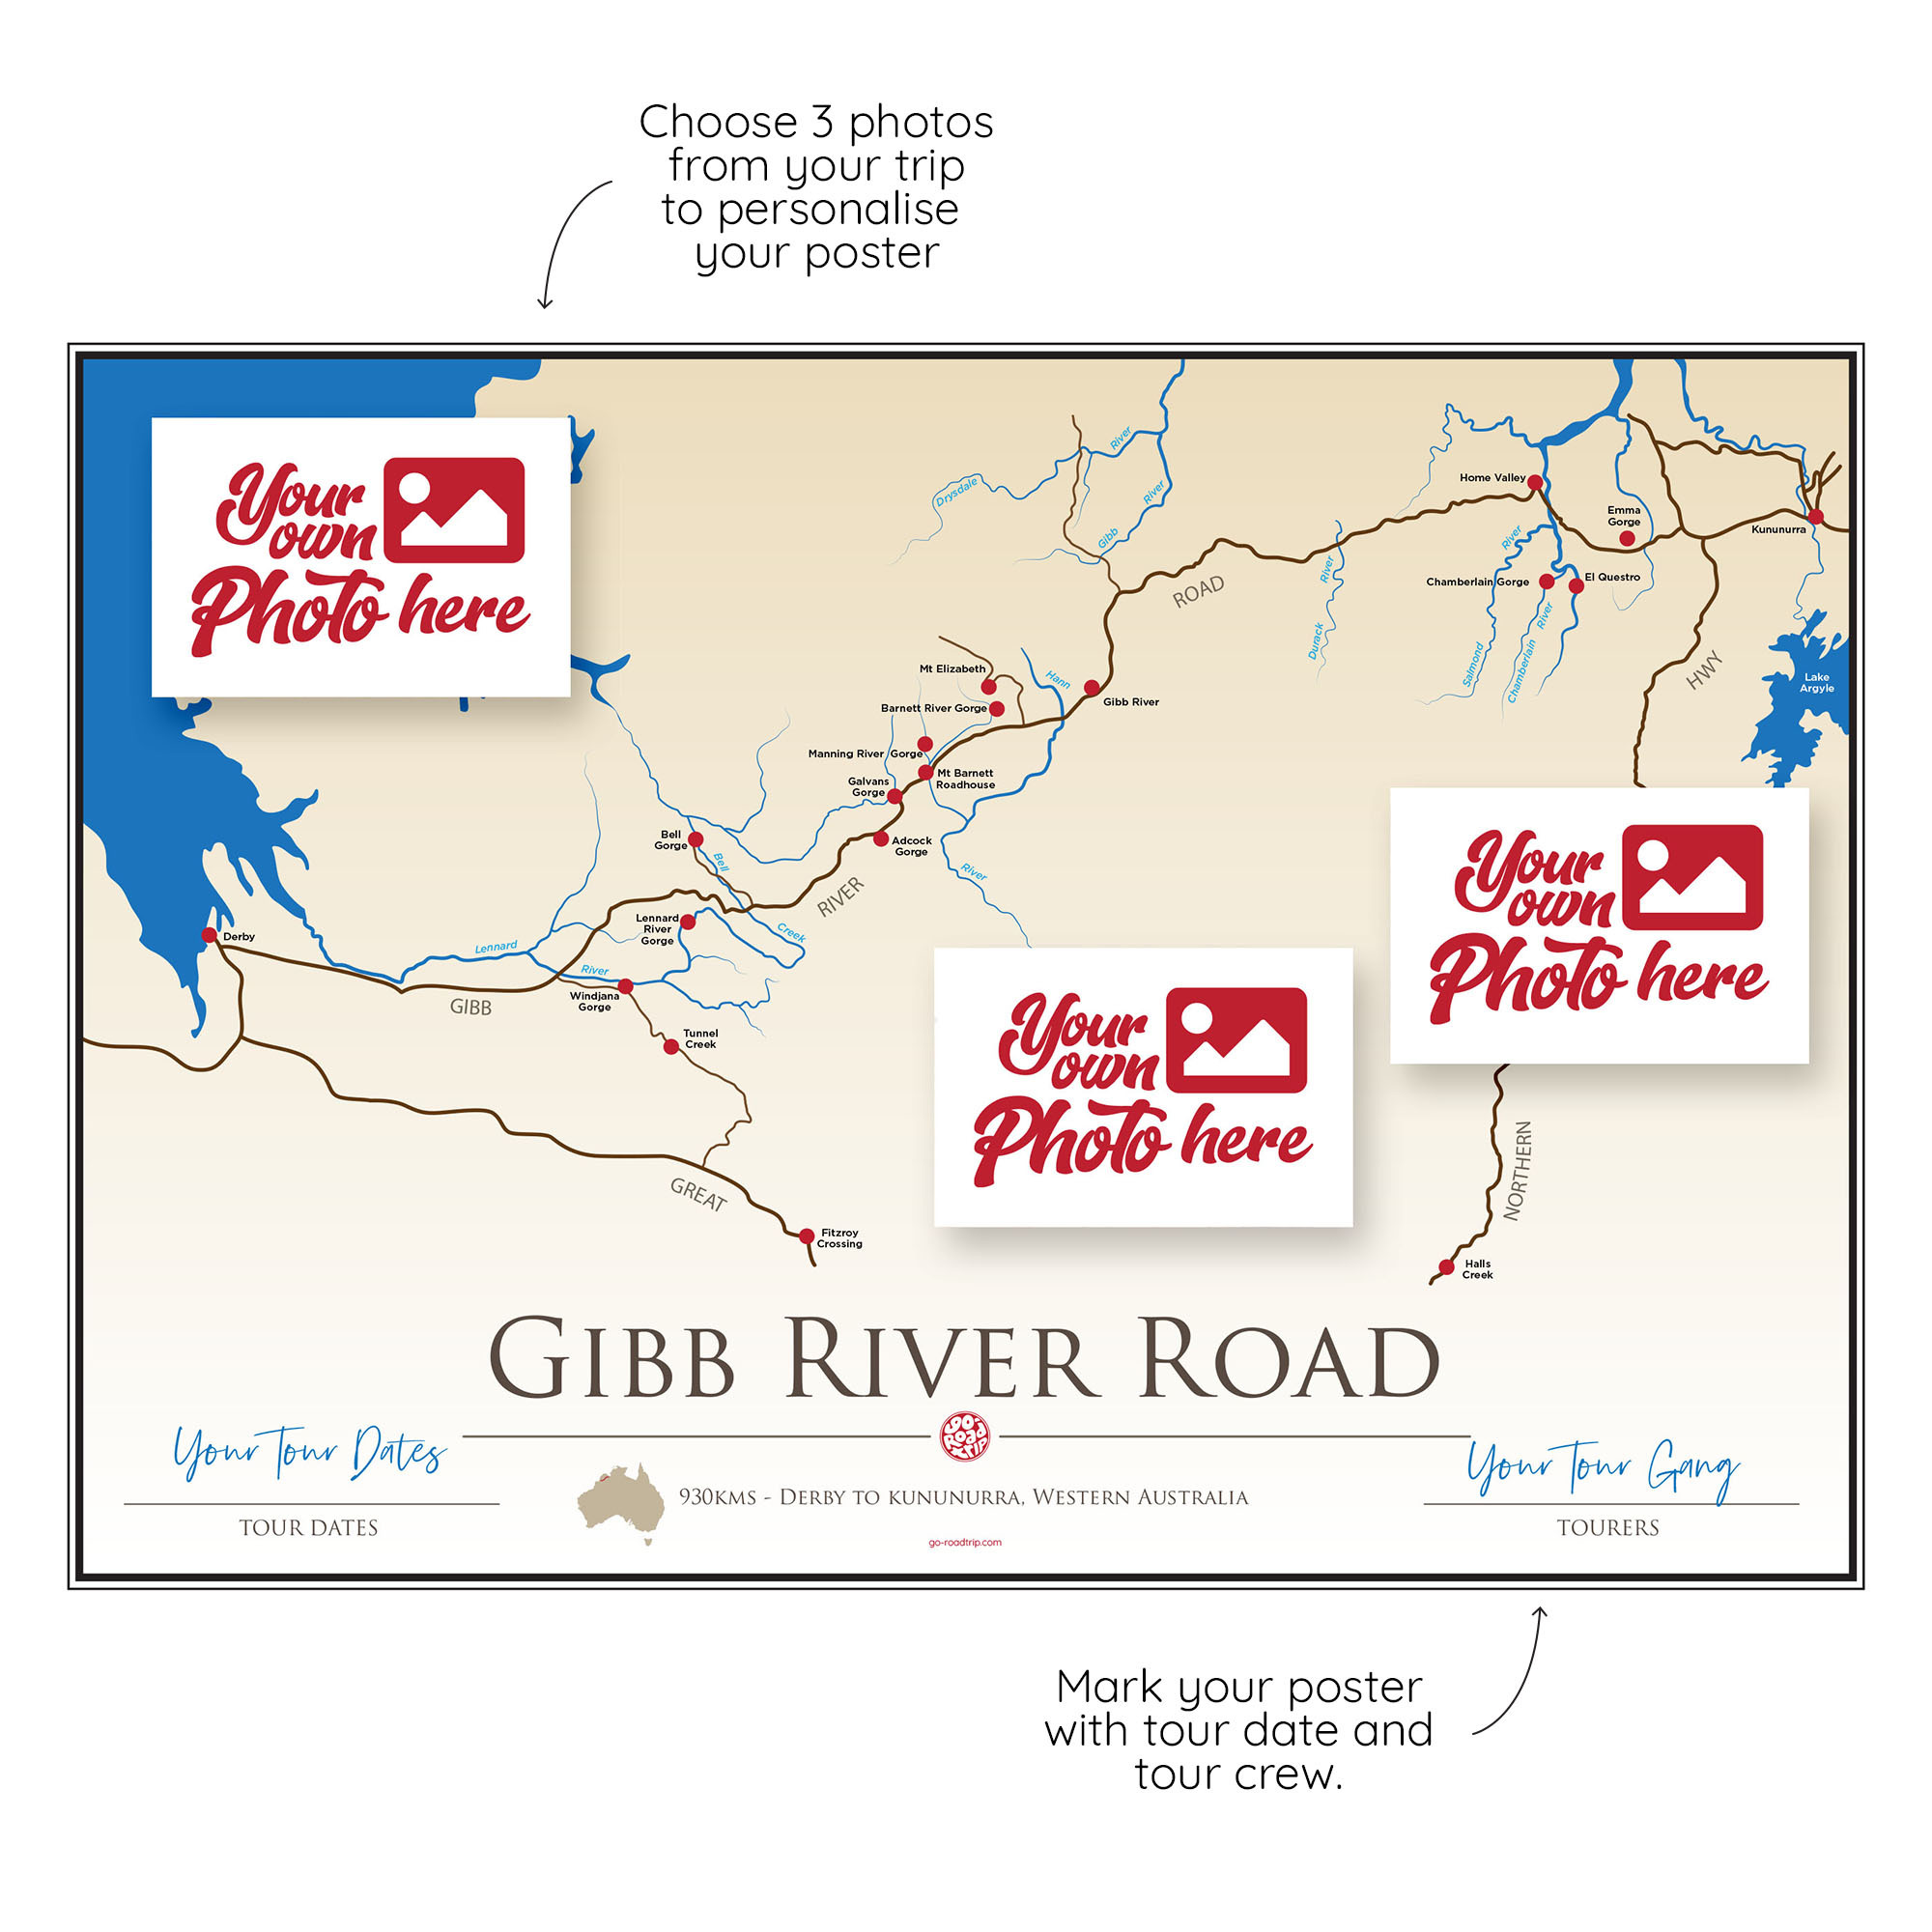 ICONIC TRACK: Gibb River Road Personal Poster